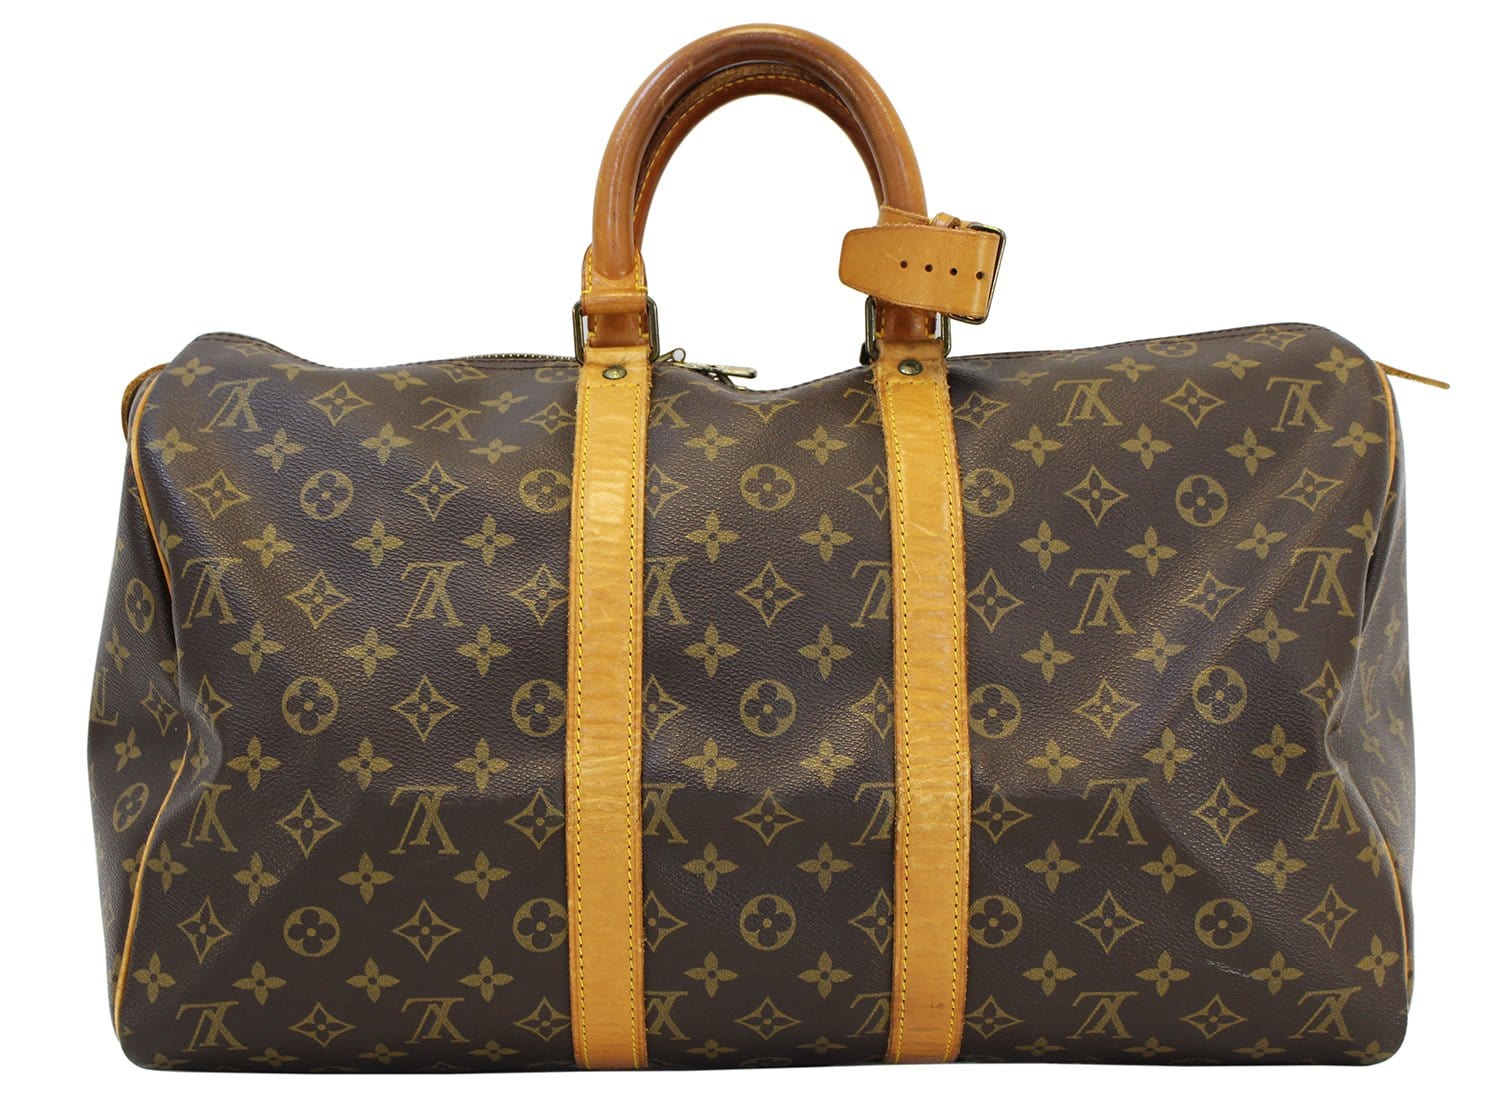 Authentic LOUIS VUITTON Monogram Canvas Keepall 45 Travel Bag Vintage 4829336116dd5